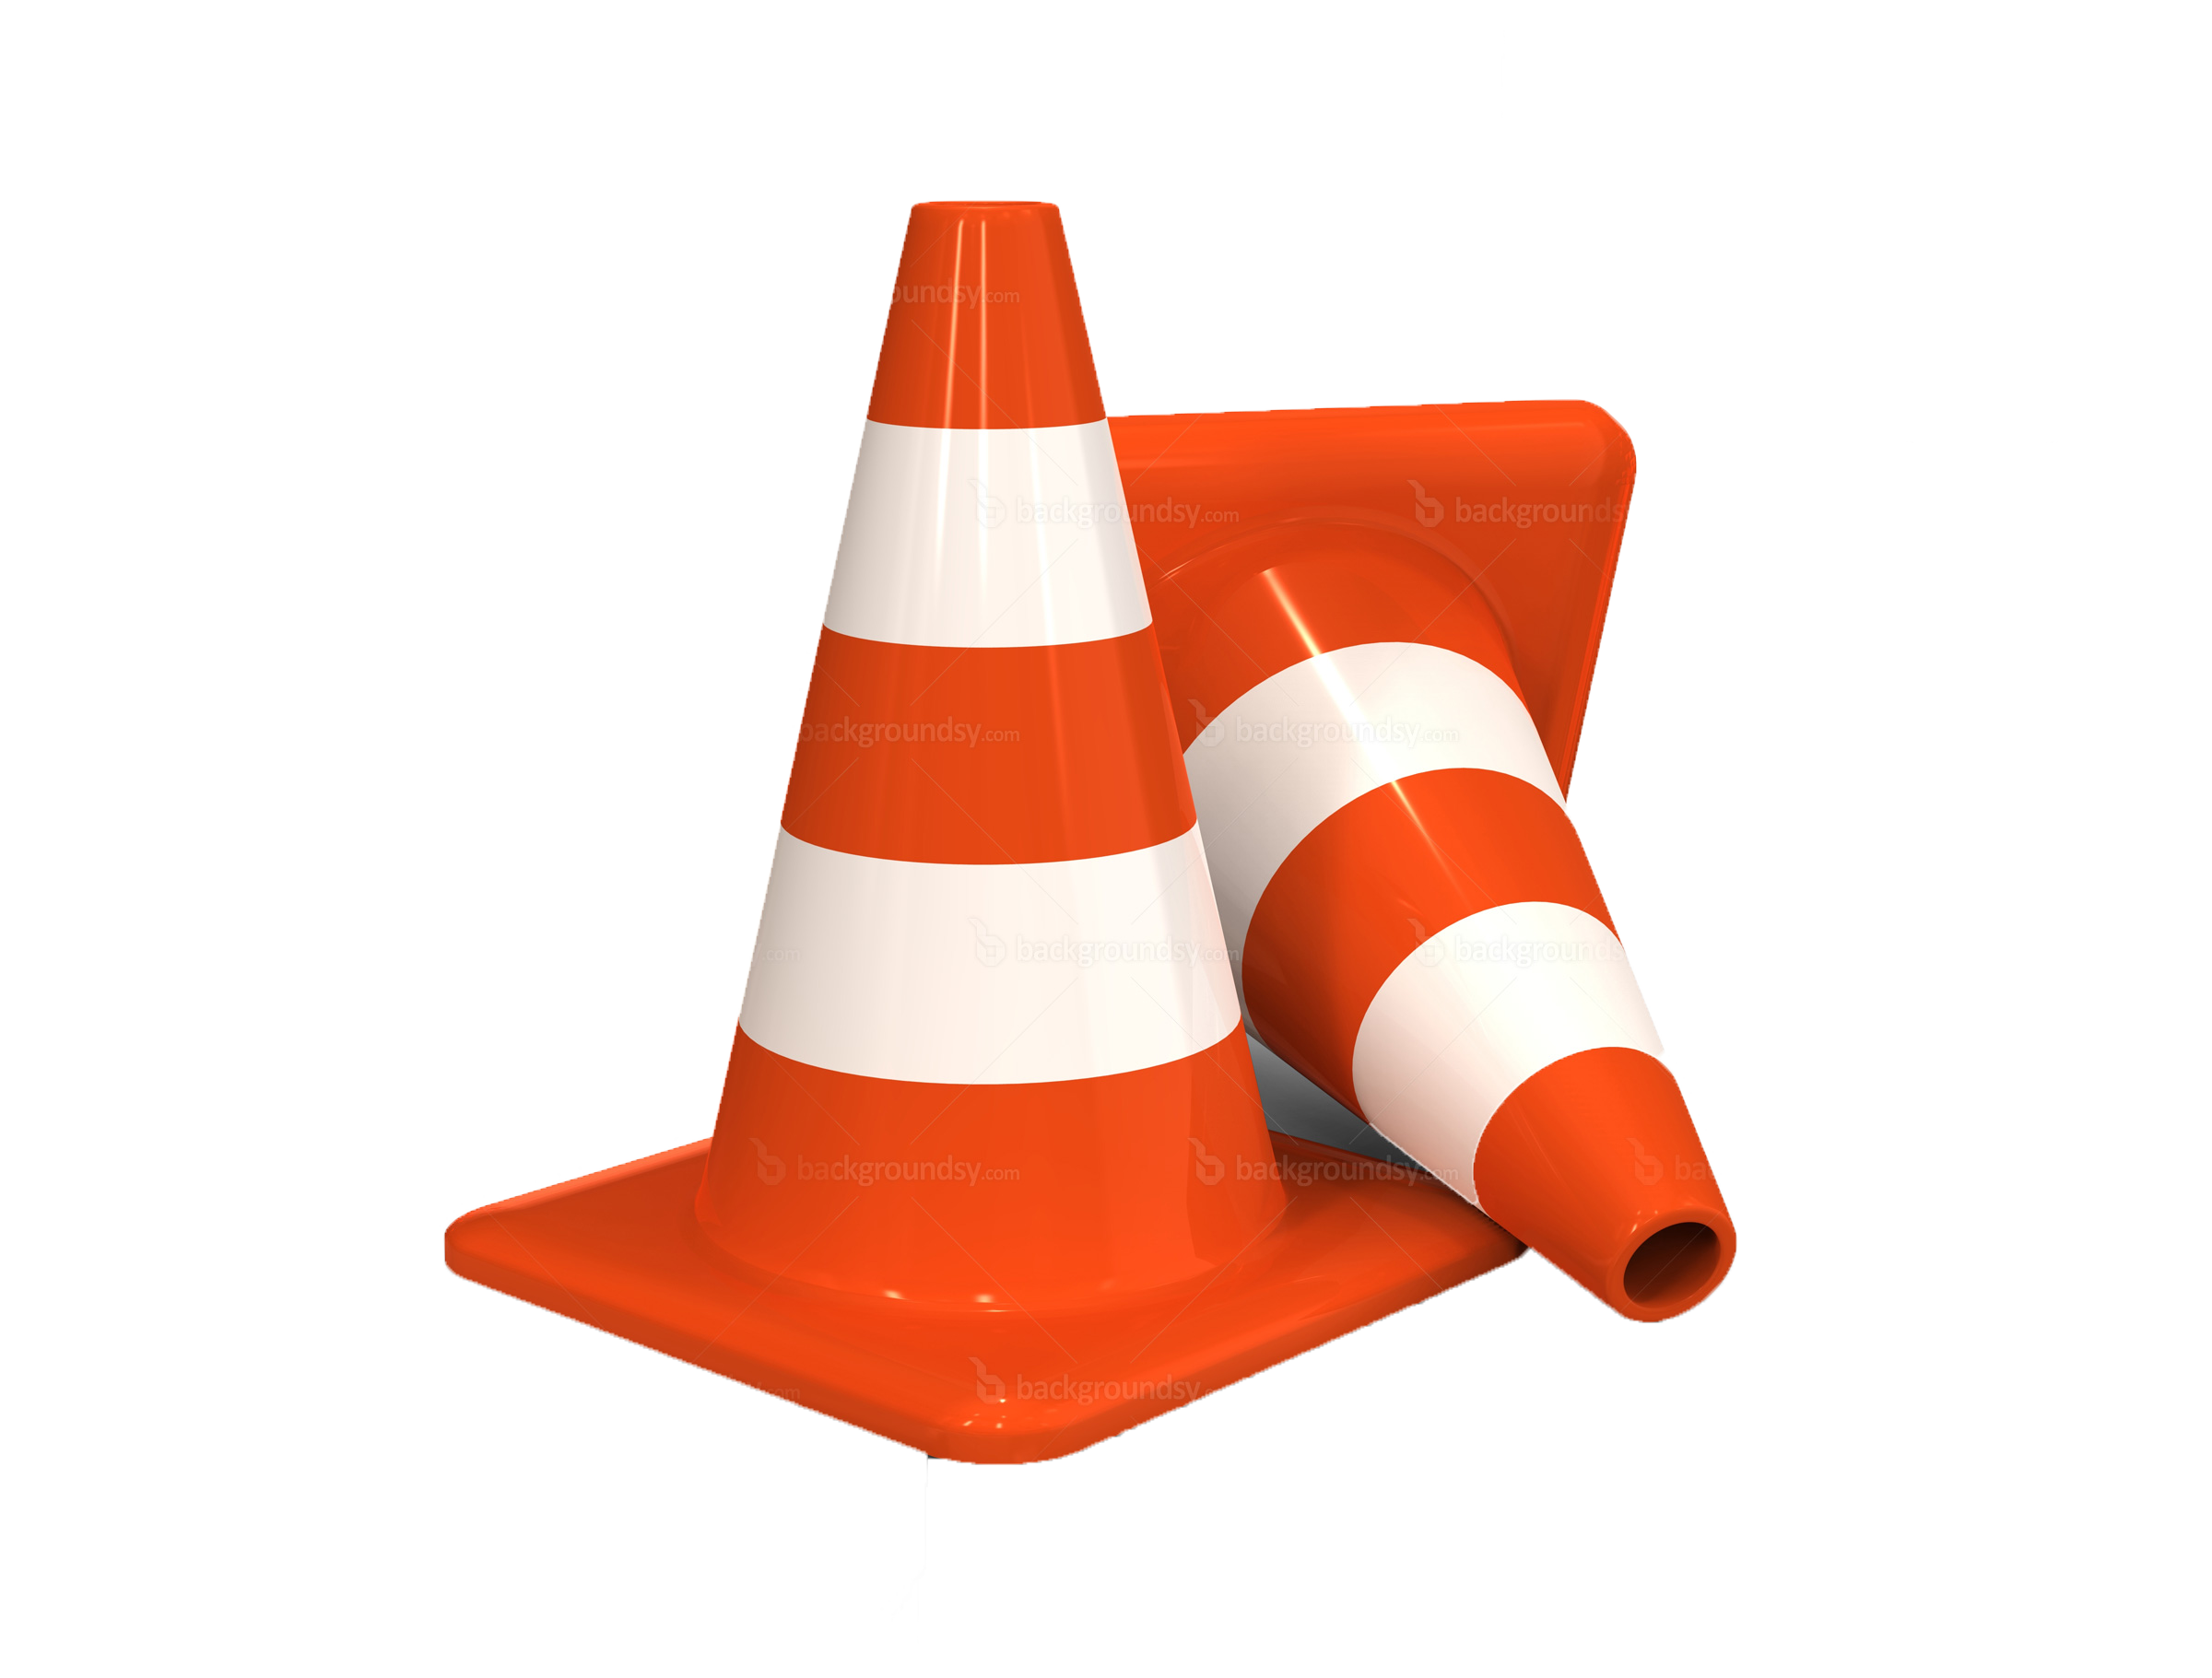 kisspng-traffic-cone-road-traffic-safety-cone-5b40662eb51aa1.7410617815309471187418